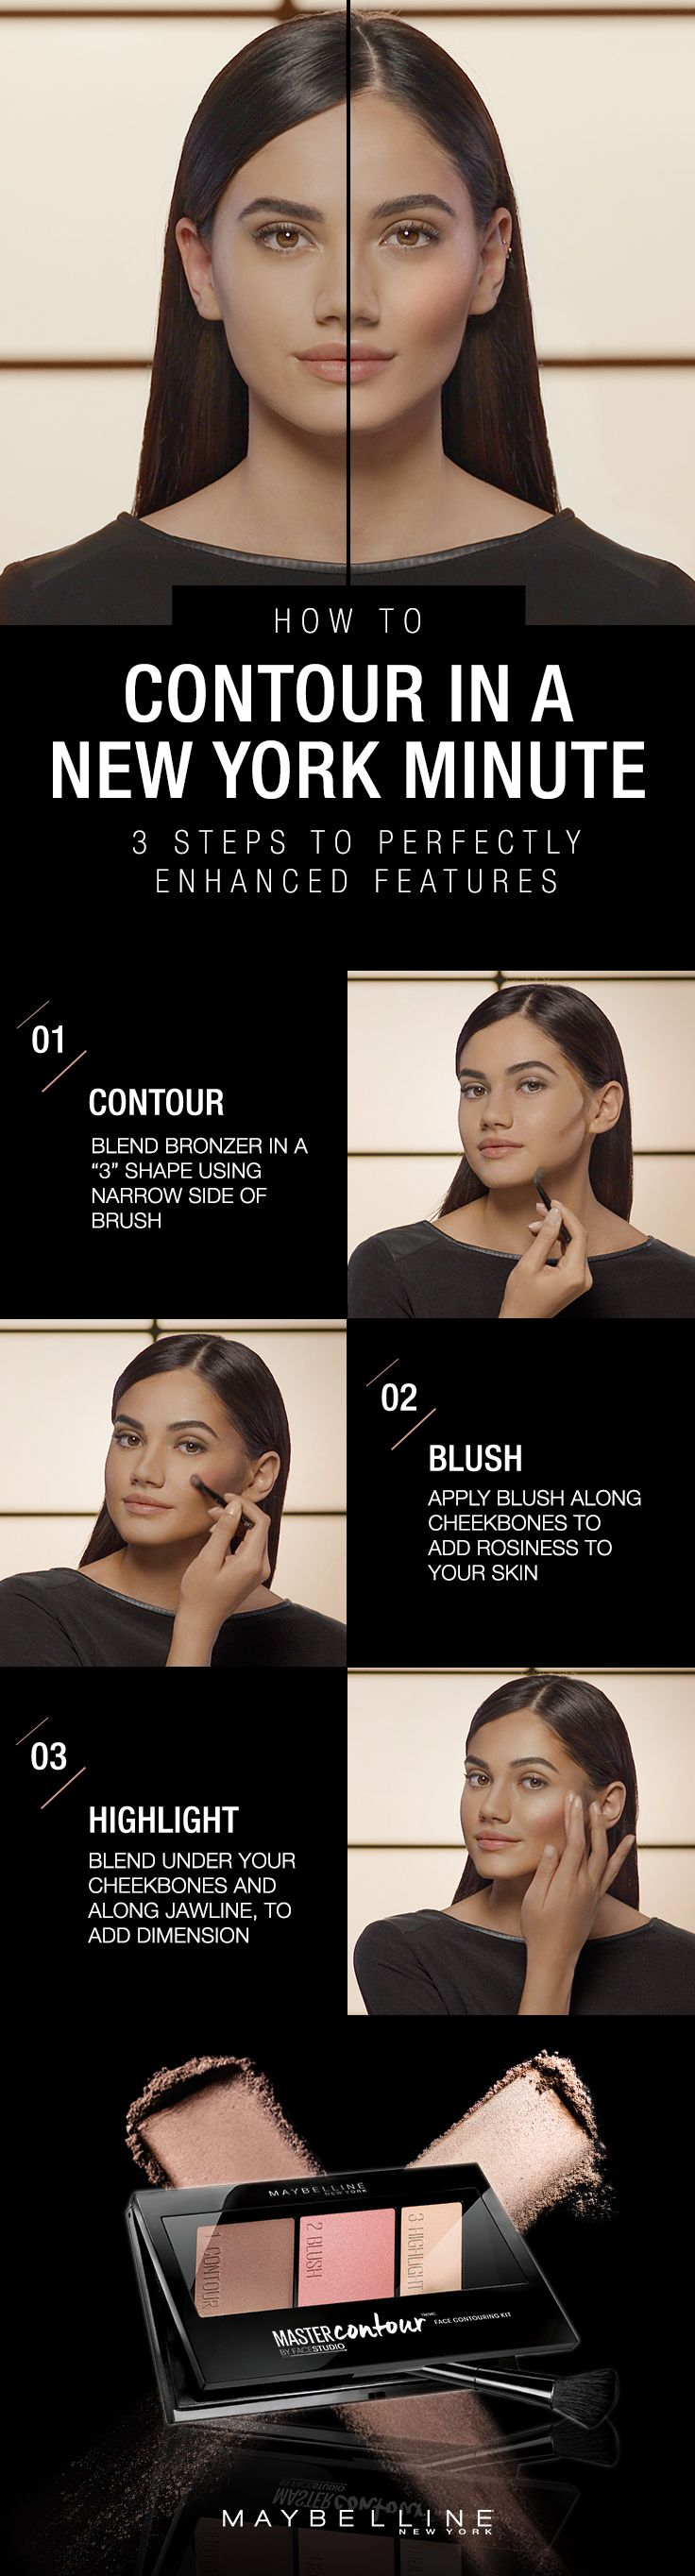 Contouring is not as scary as it looks! Take three easy steps to get a natural looking sculpted face with the new Master Contour palette.